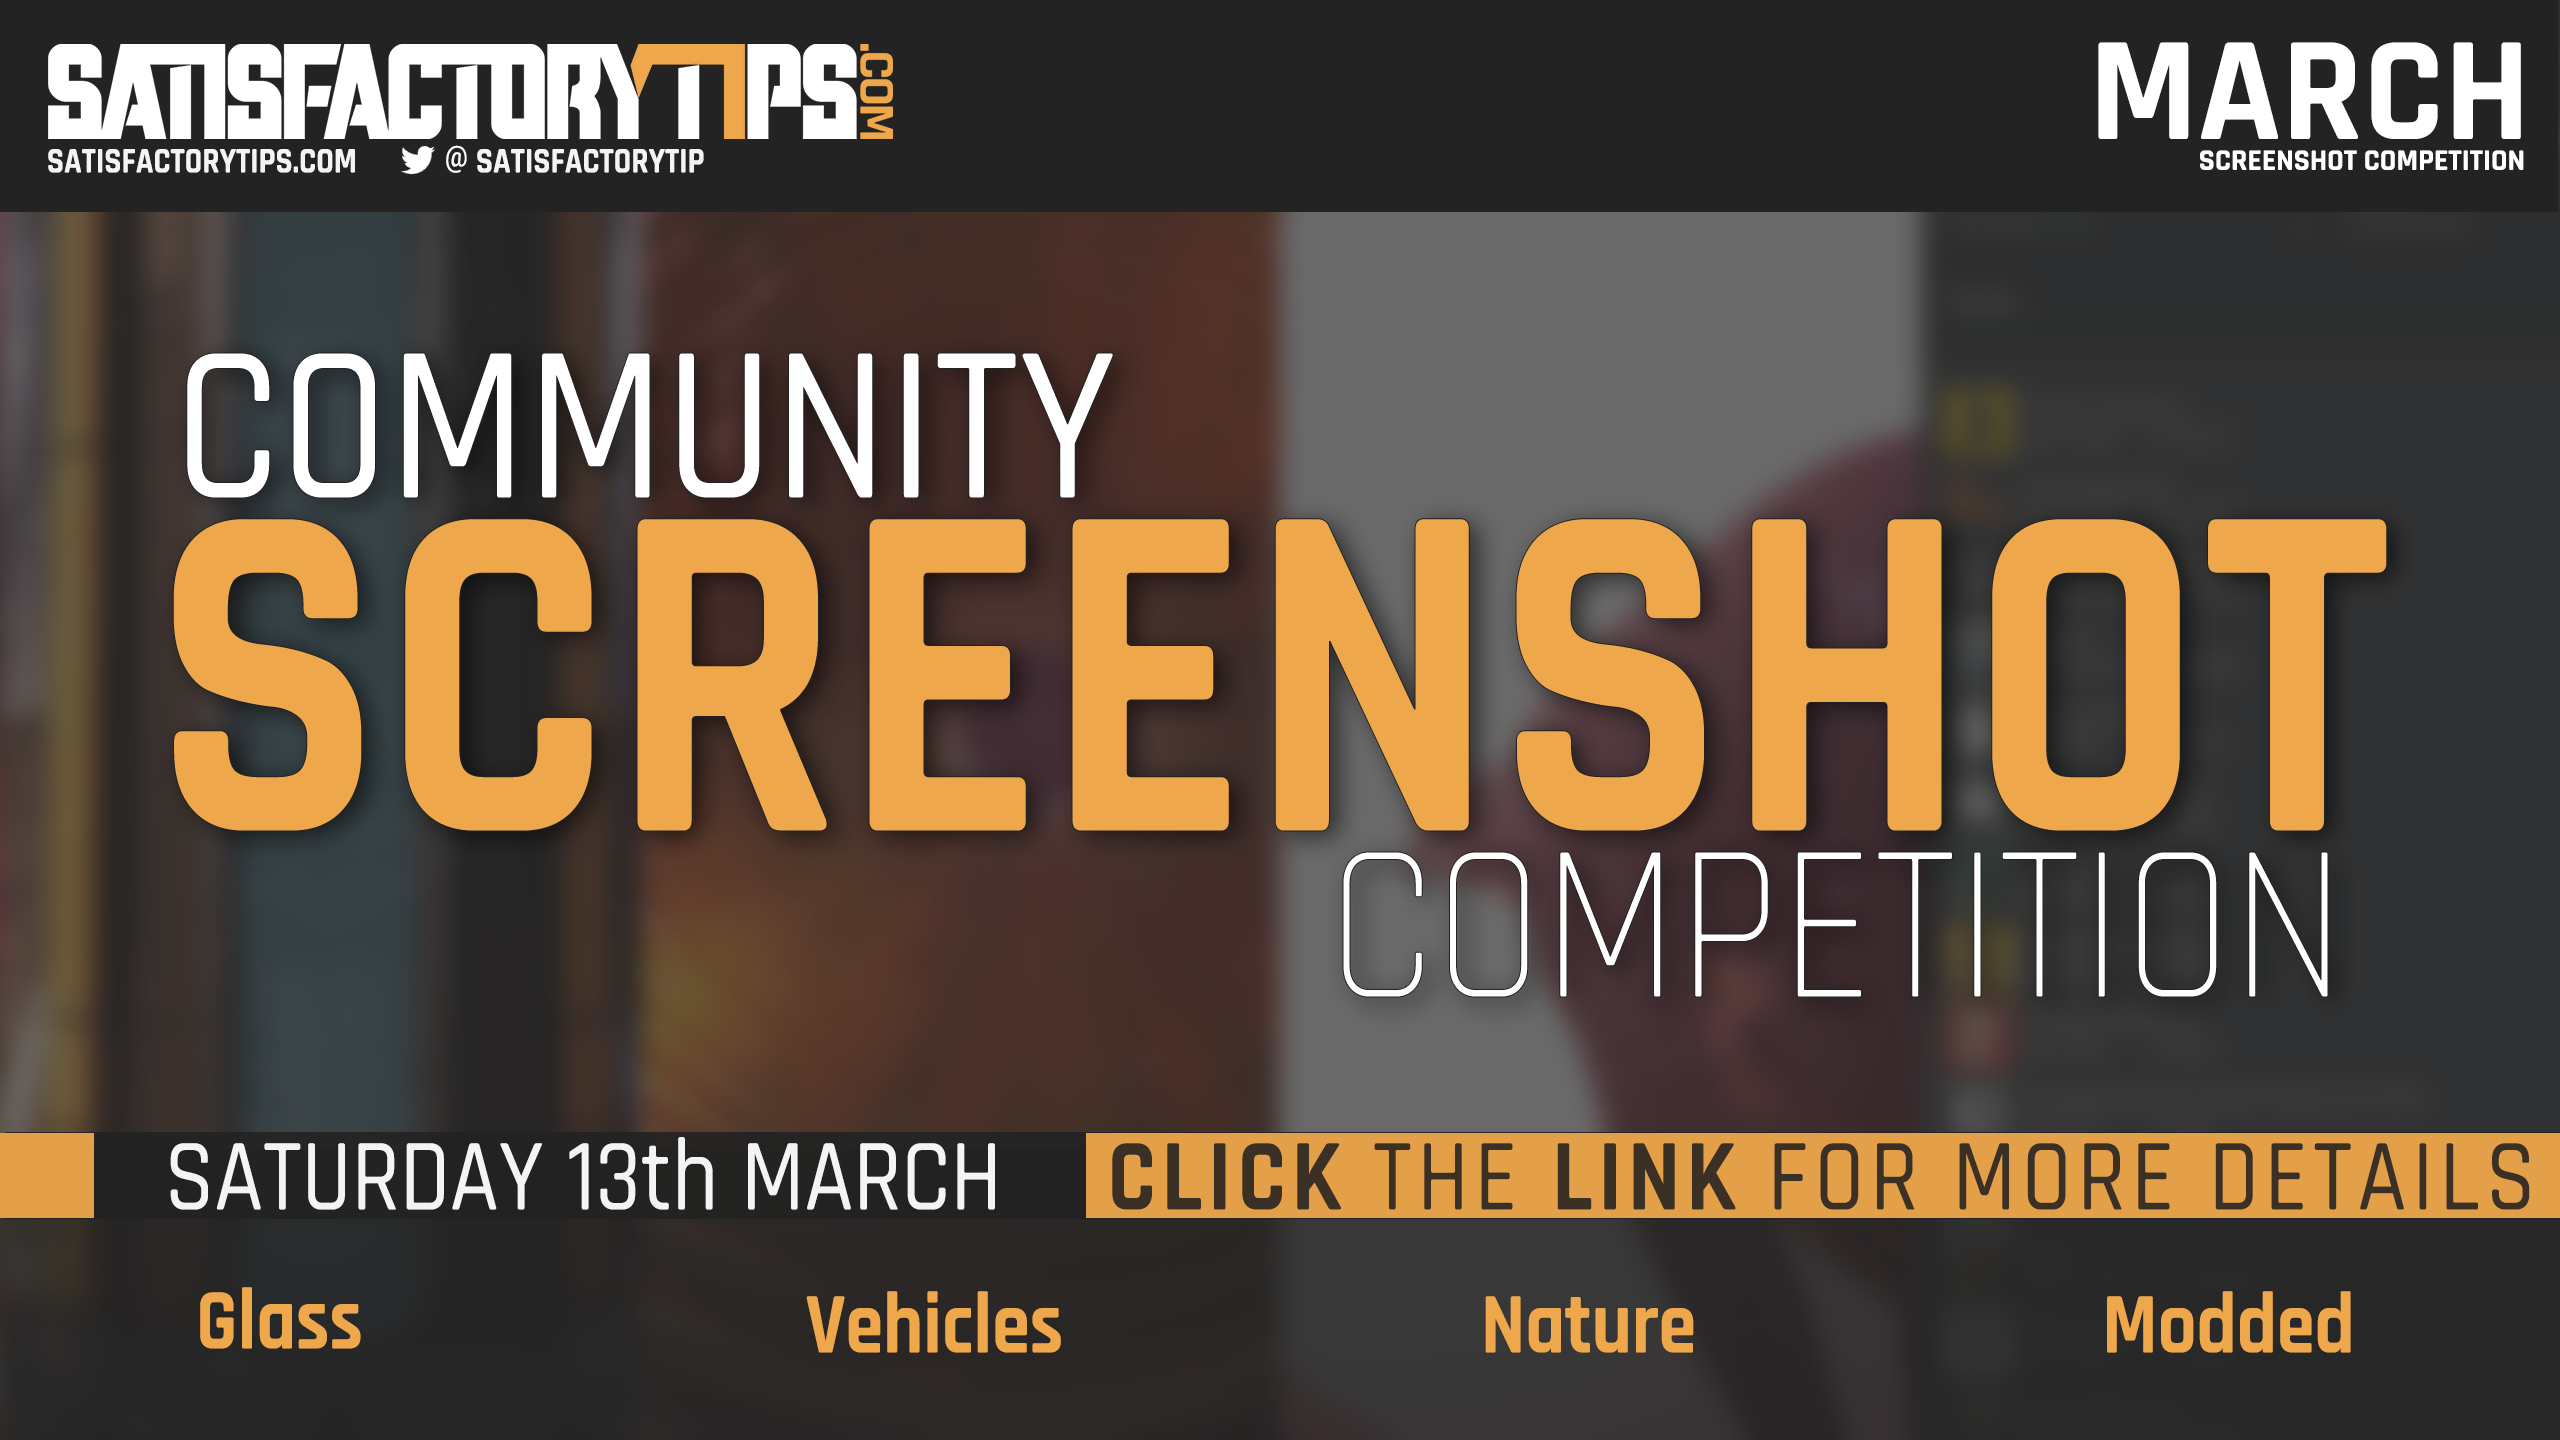 March Community Screenshot Competition 2021